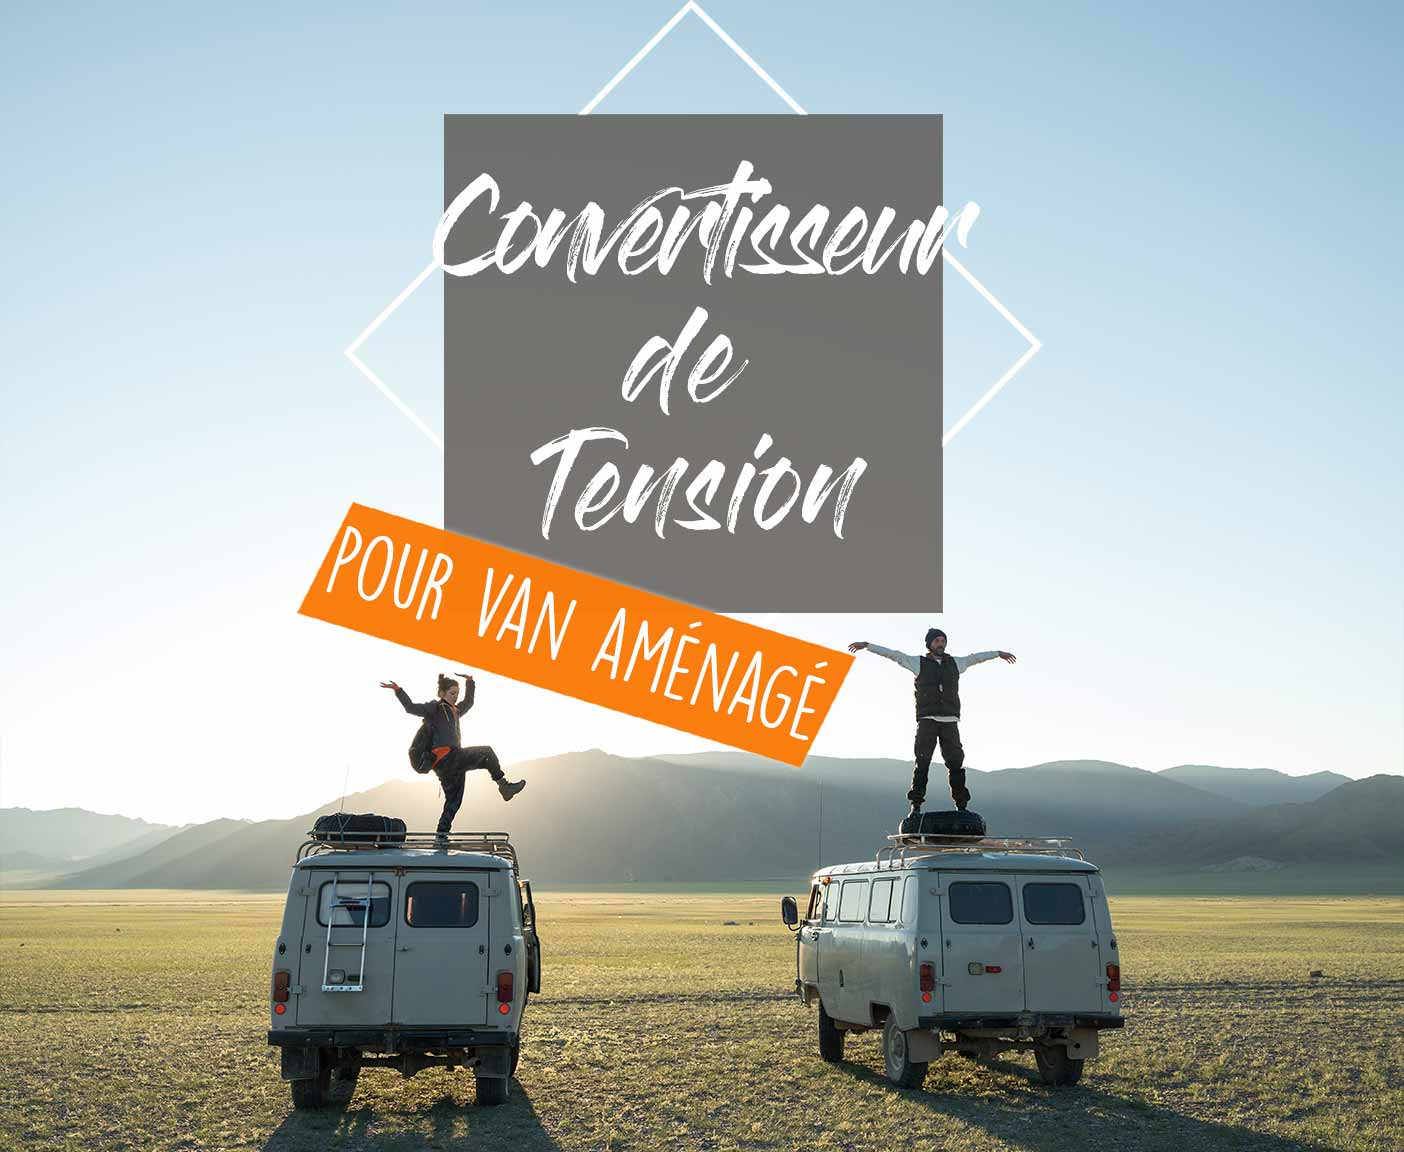 convertisseur-tension-van-fourgon-amenage-vanlife-12-v-230-electricite-batterie-cable-solaire-installation-onduleur-transformer